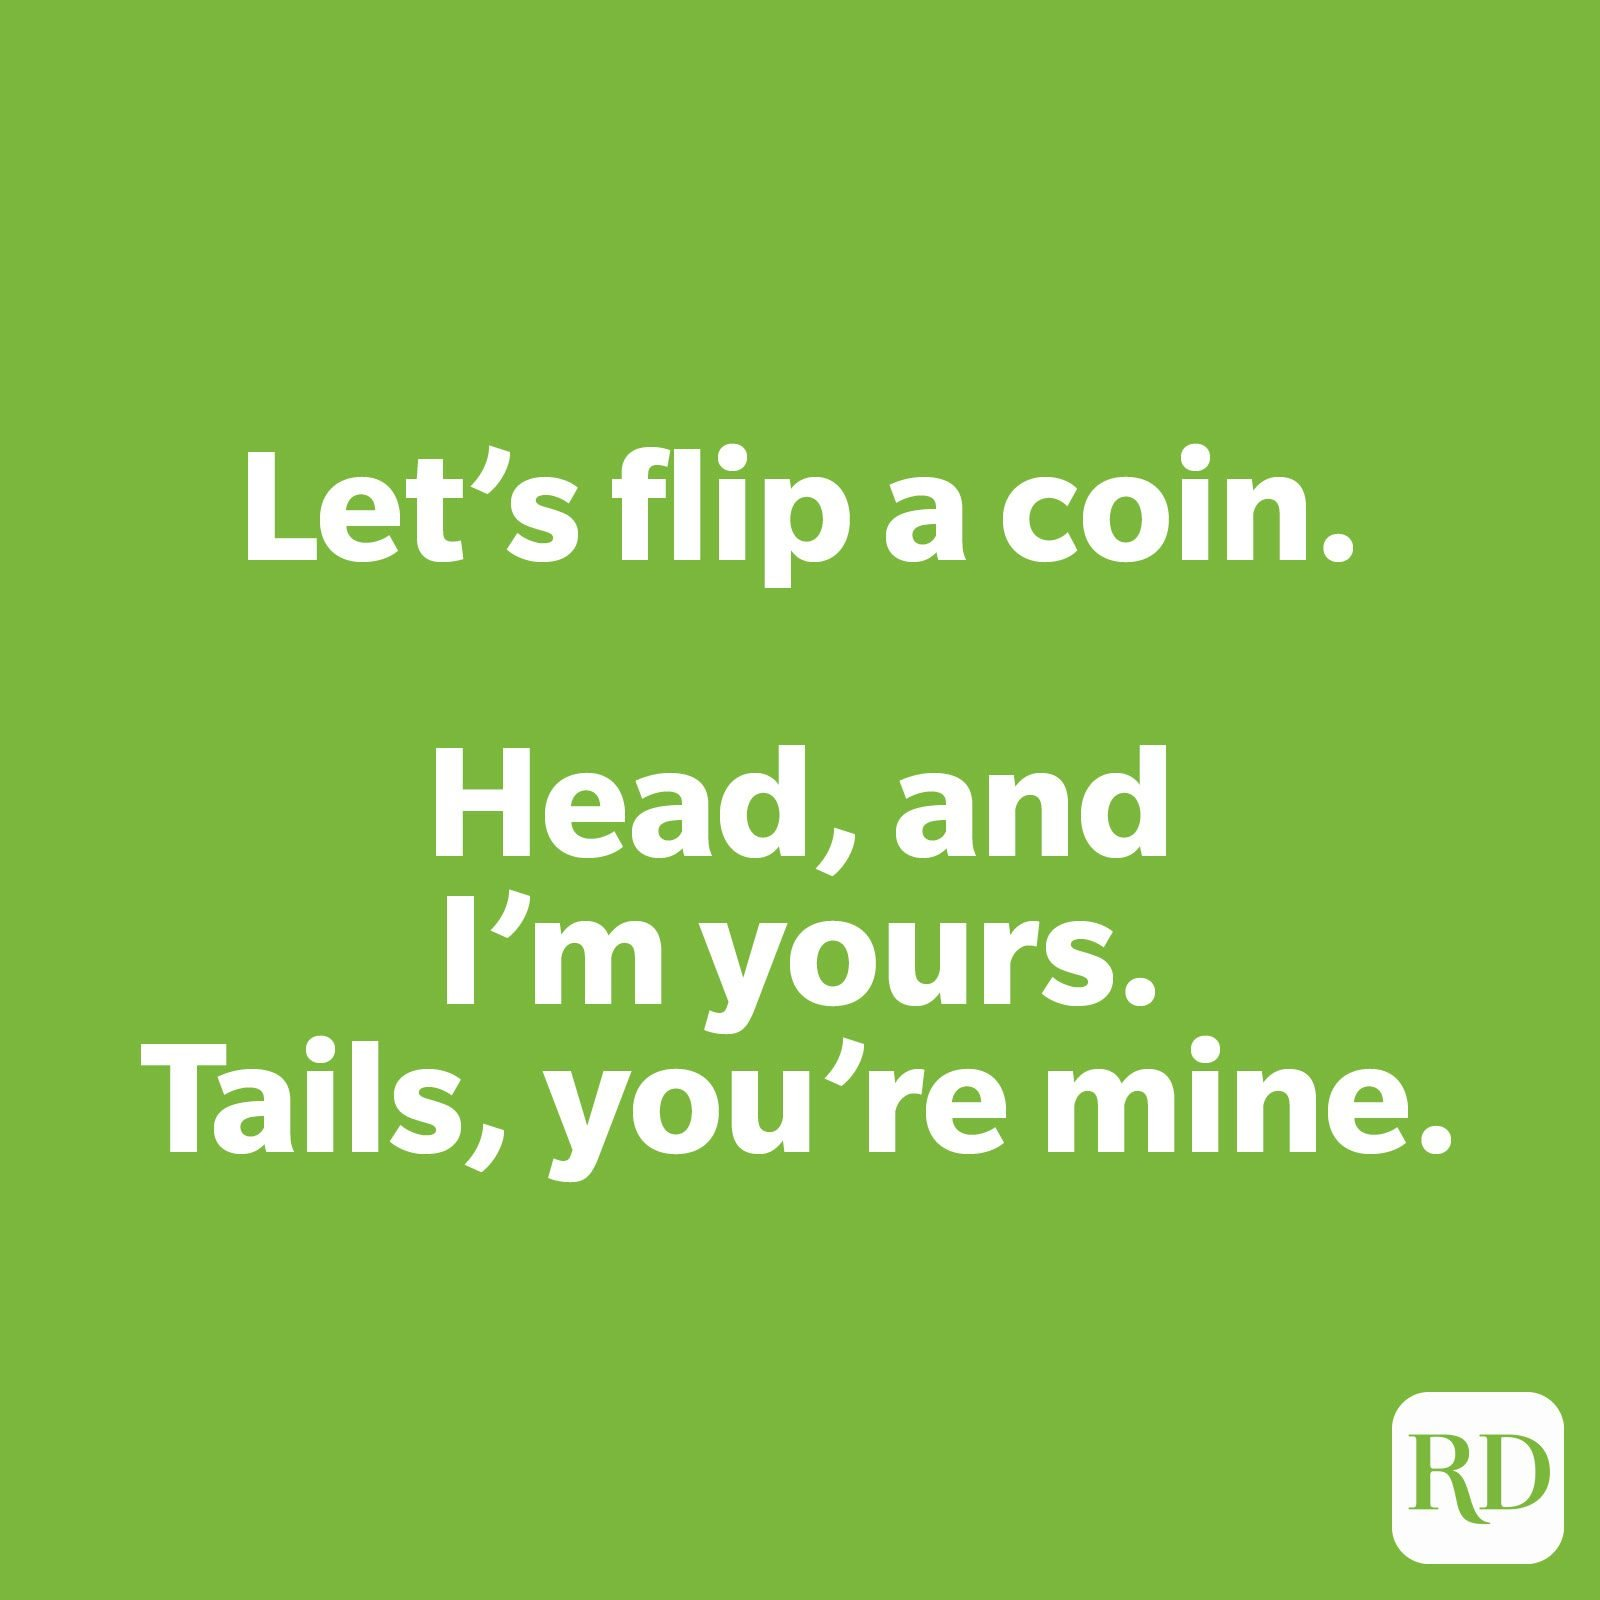 Let's flip a coin. Head, and I'm yours. Tails, you're mine.